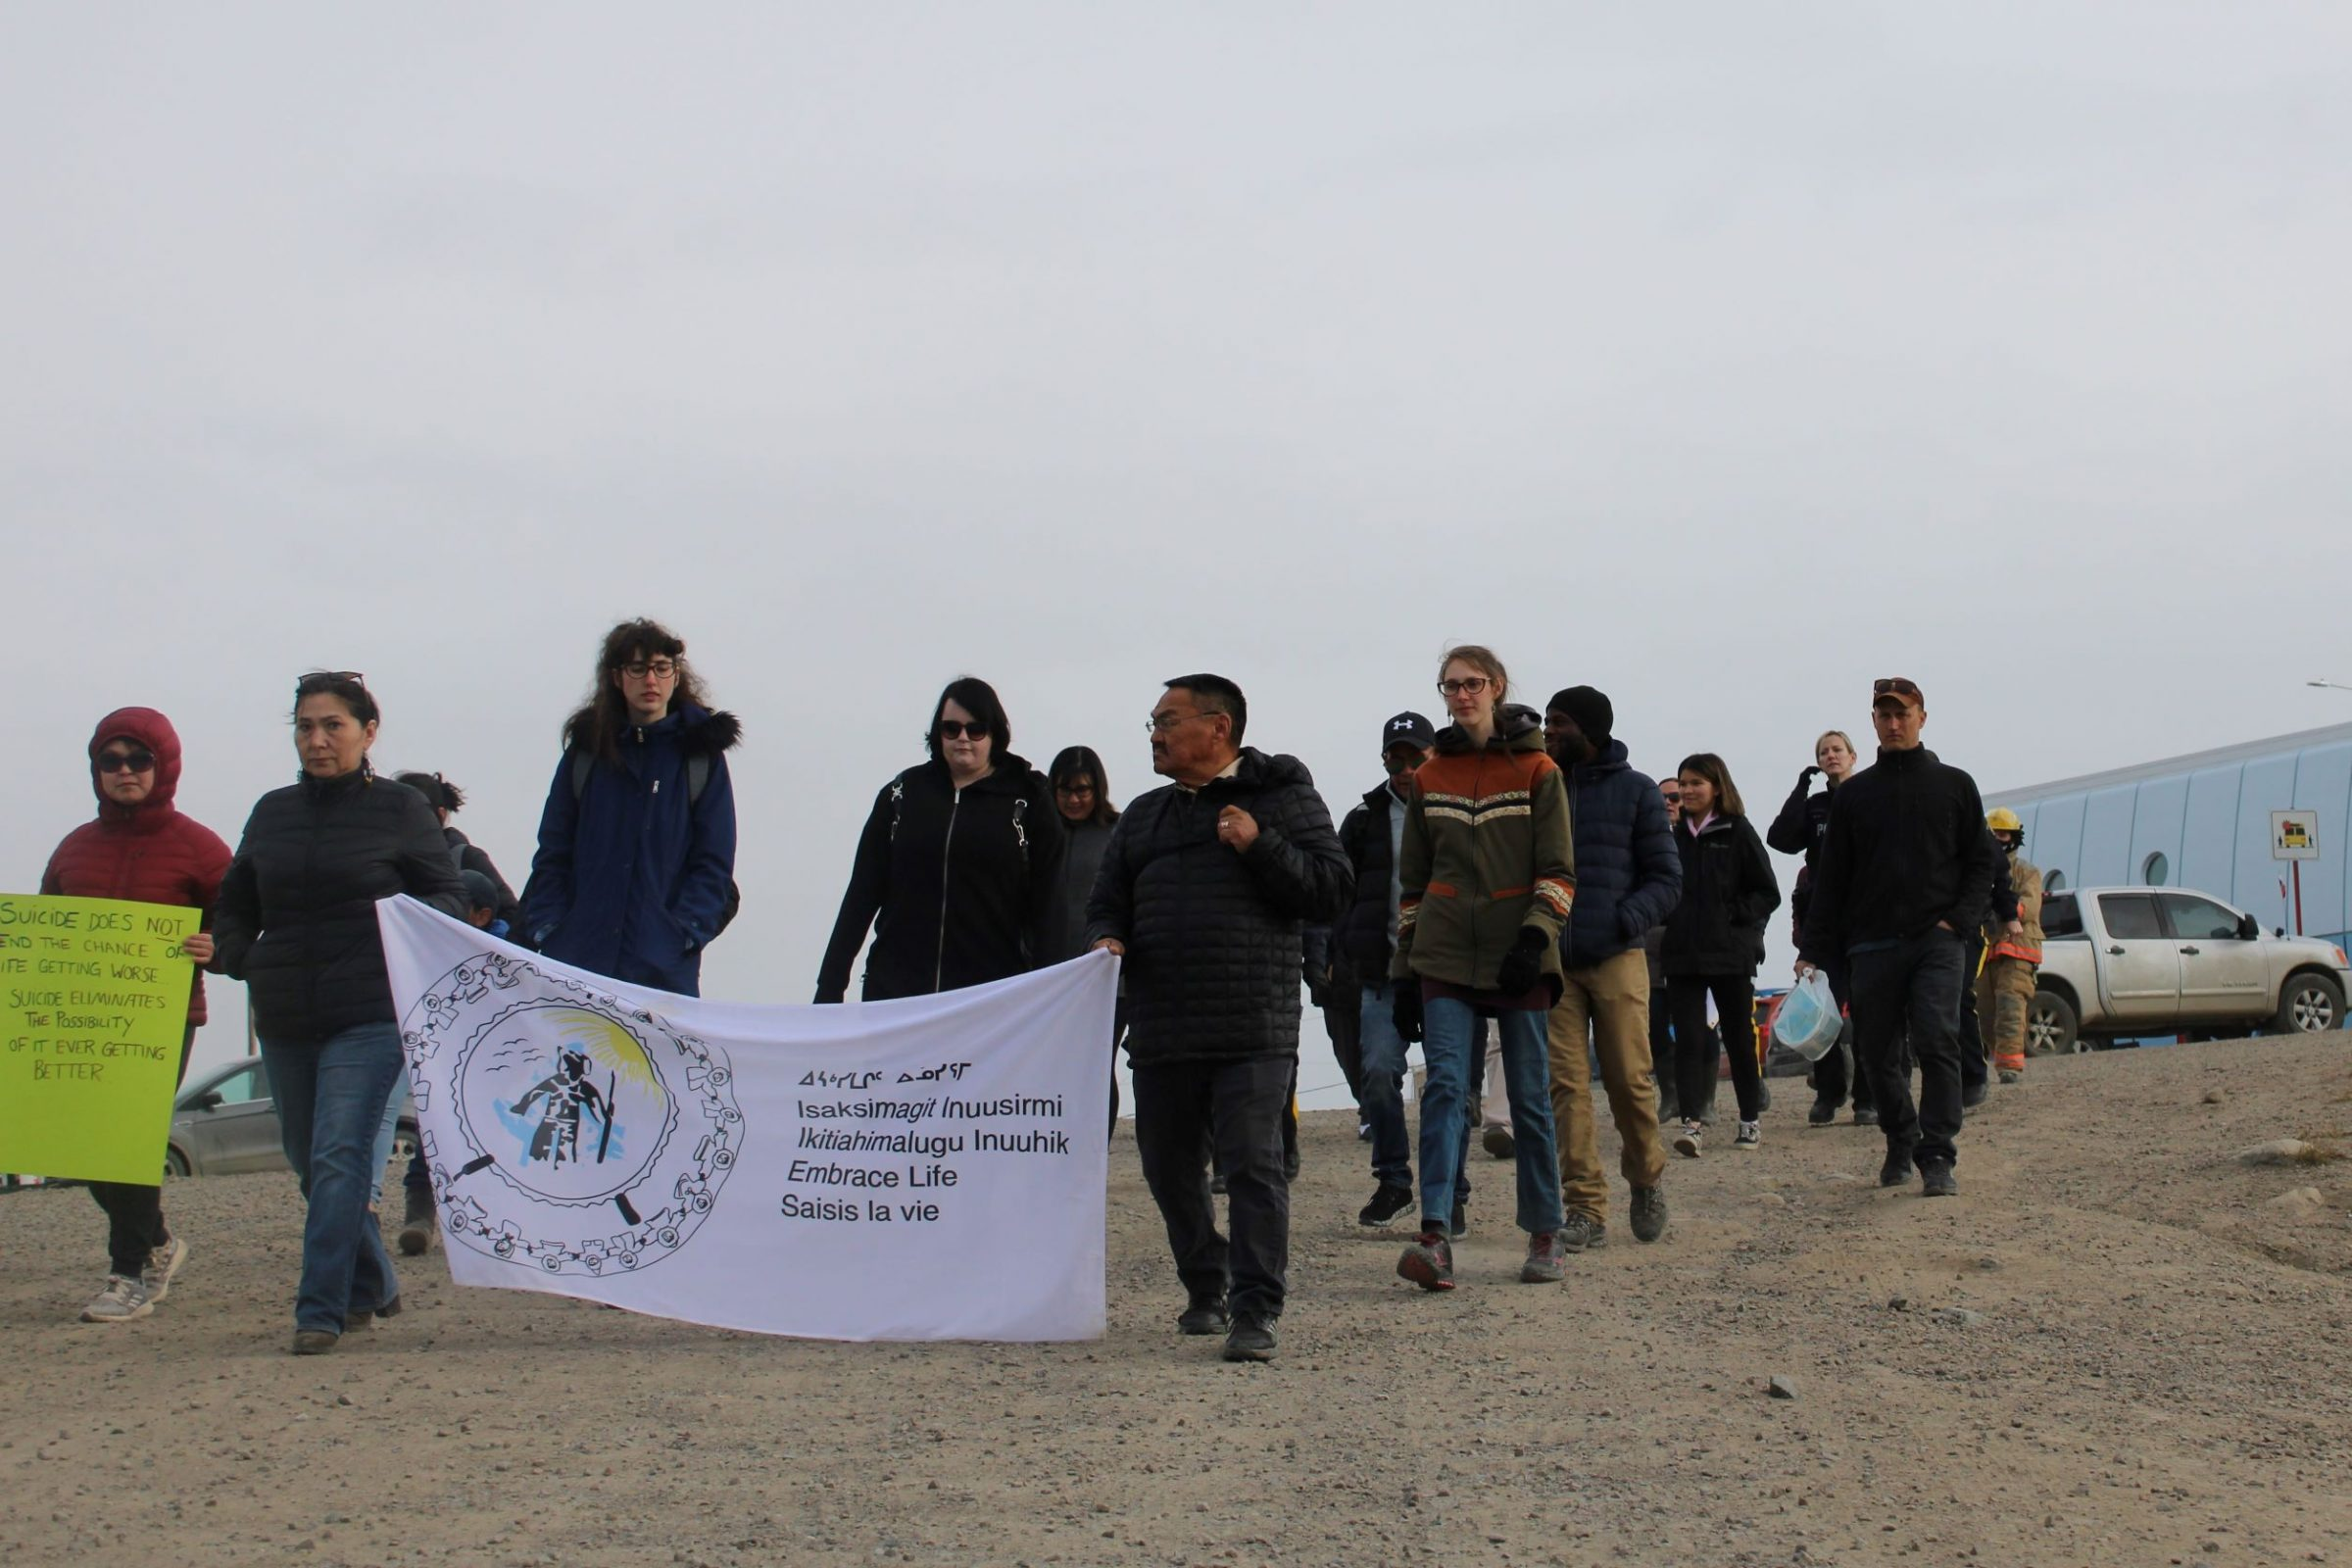 Iqaluit residents kick off the Embrace Life Day walk outside Inuksuk High School on Friday afternoon. The walk, organized by the Embrace Life Council, is dedicated to suicide prevention. Around 25 residents participated, following a route from the high school to the Four Corners before finishing at Iqaluit Square. (Photo by David Lochead)